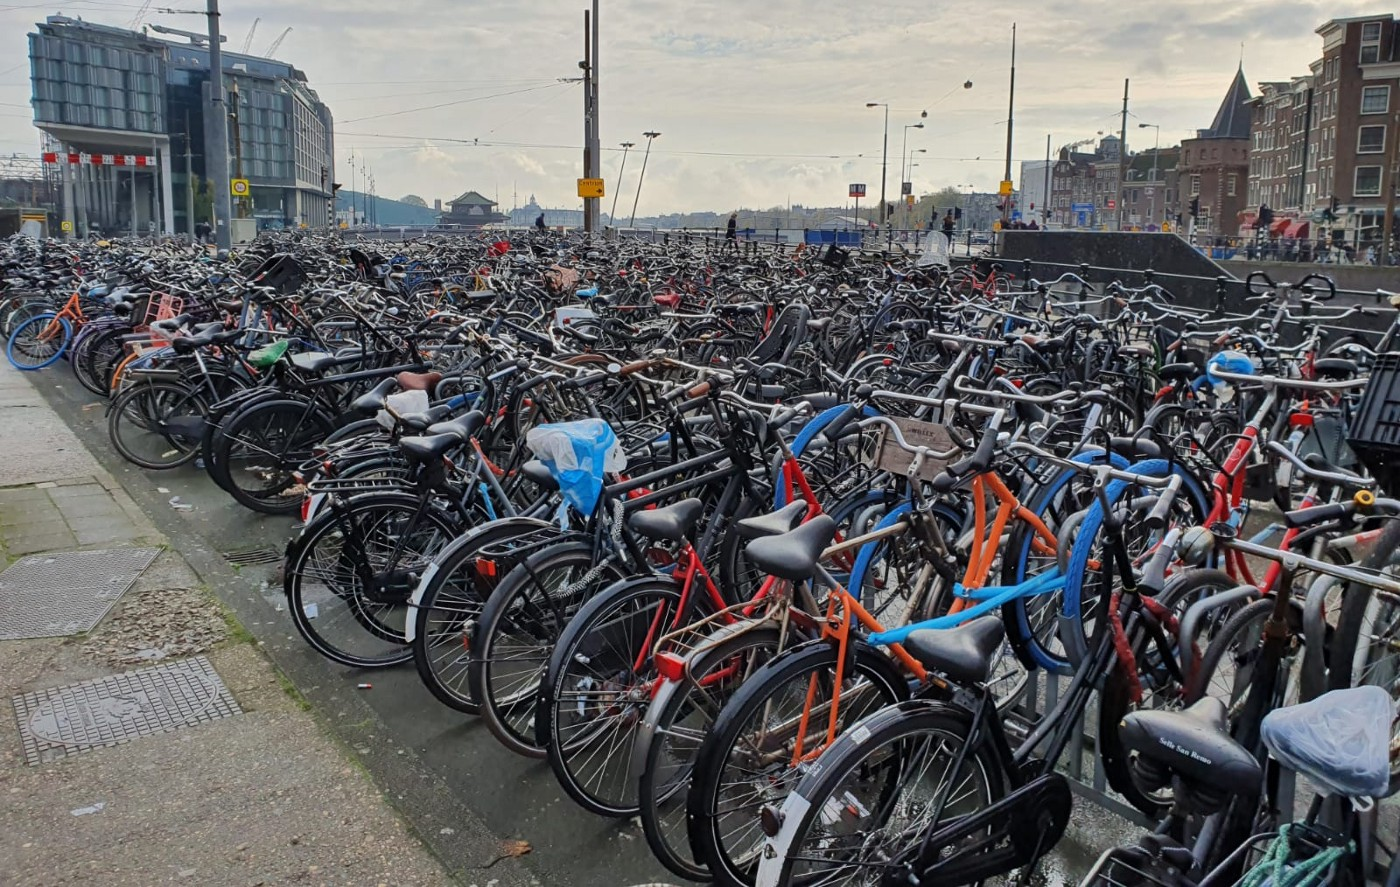 A large amount of bycicles piled together at the central station in Amsterdam